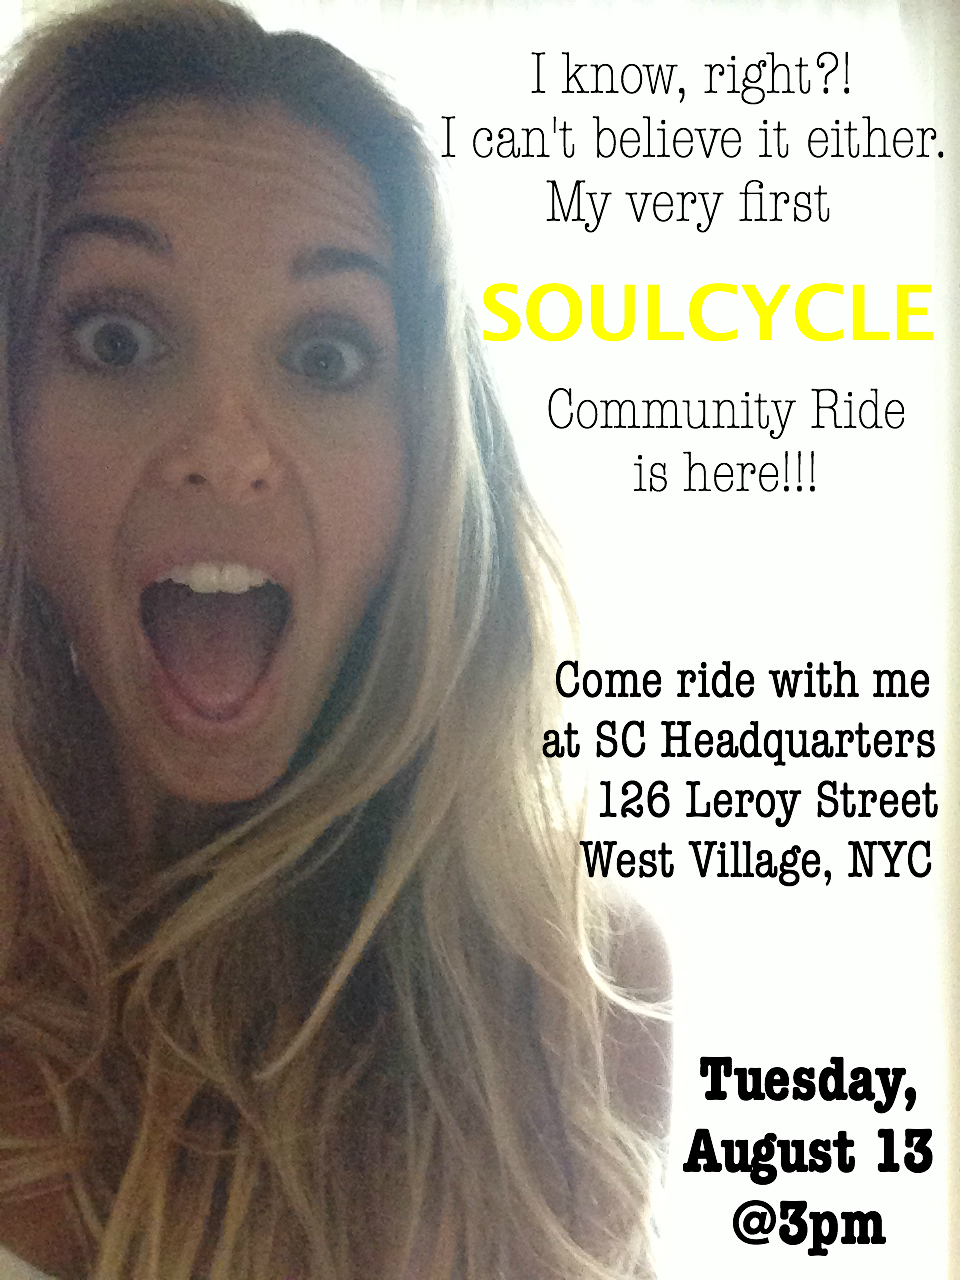 SoulCycle Community Ride #1 Invite